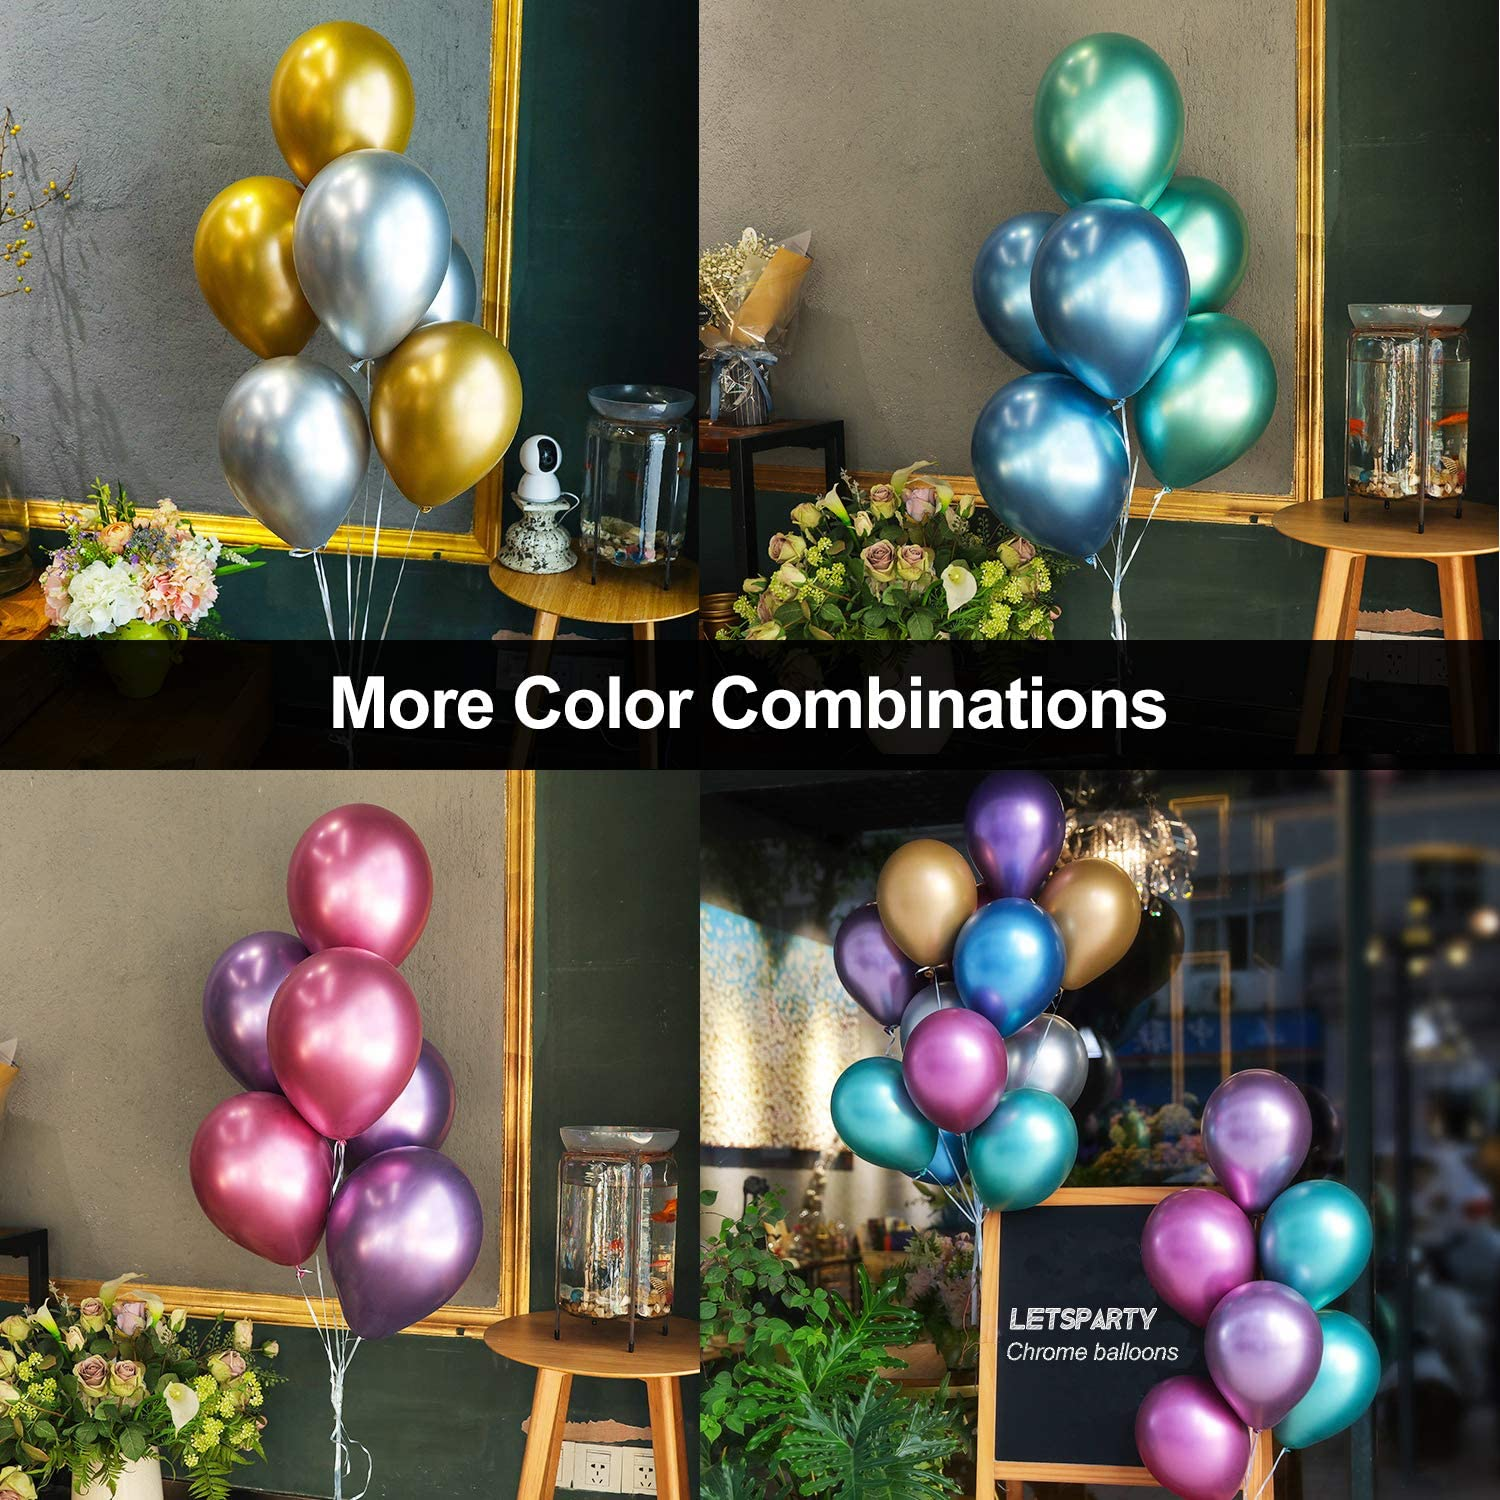 Baby Shower Etc Set Contains 10 purple Sequin Balloons and 10 Purple latex balloons Suitable for Birthday Wedding Parties MEET 20pcs 12Sequined Metal Combination Latex Balloon purple